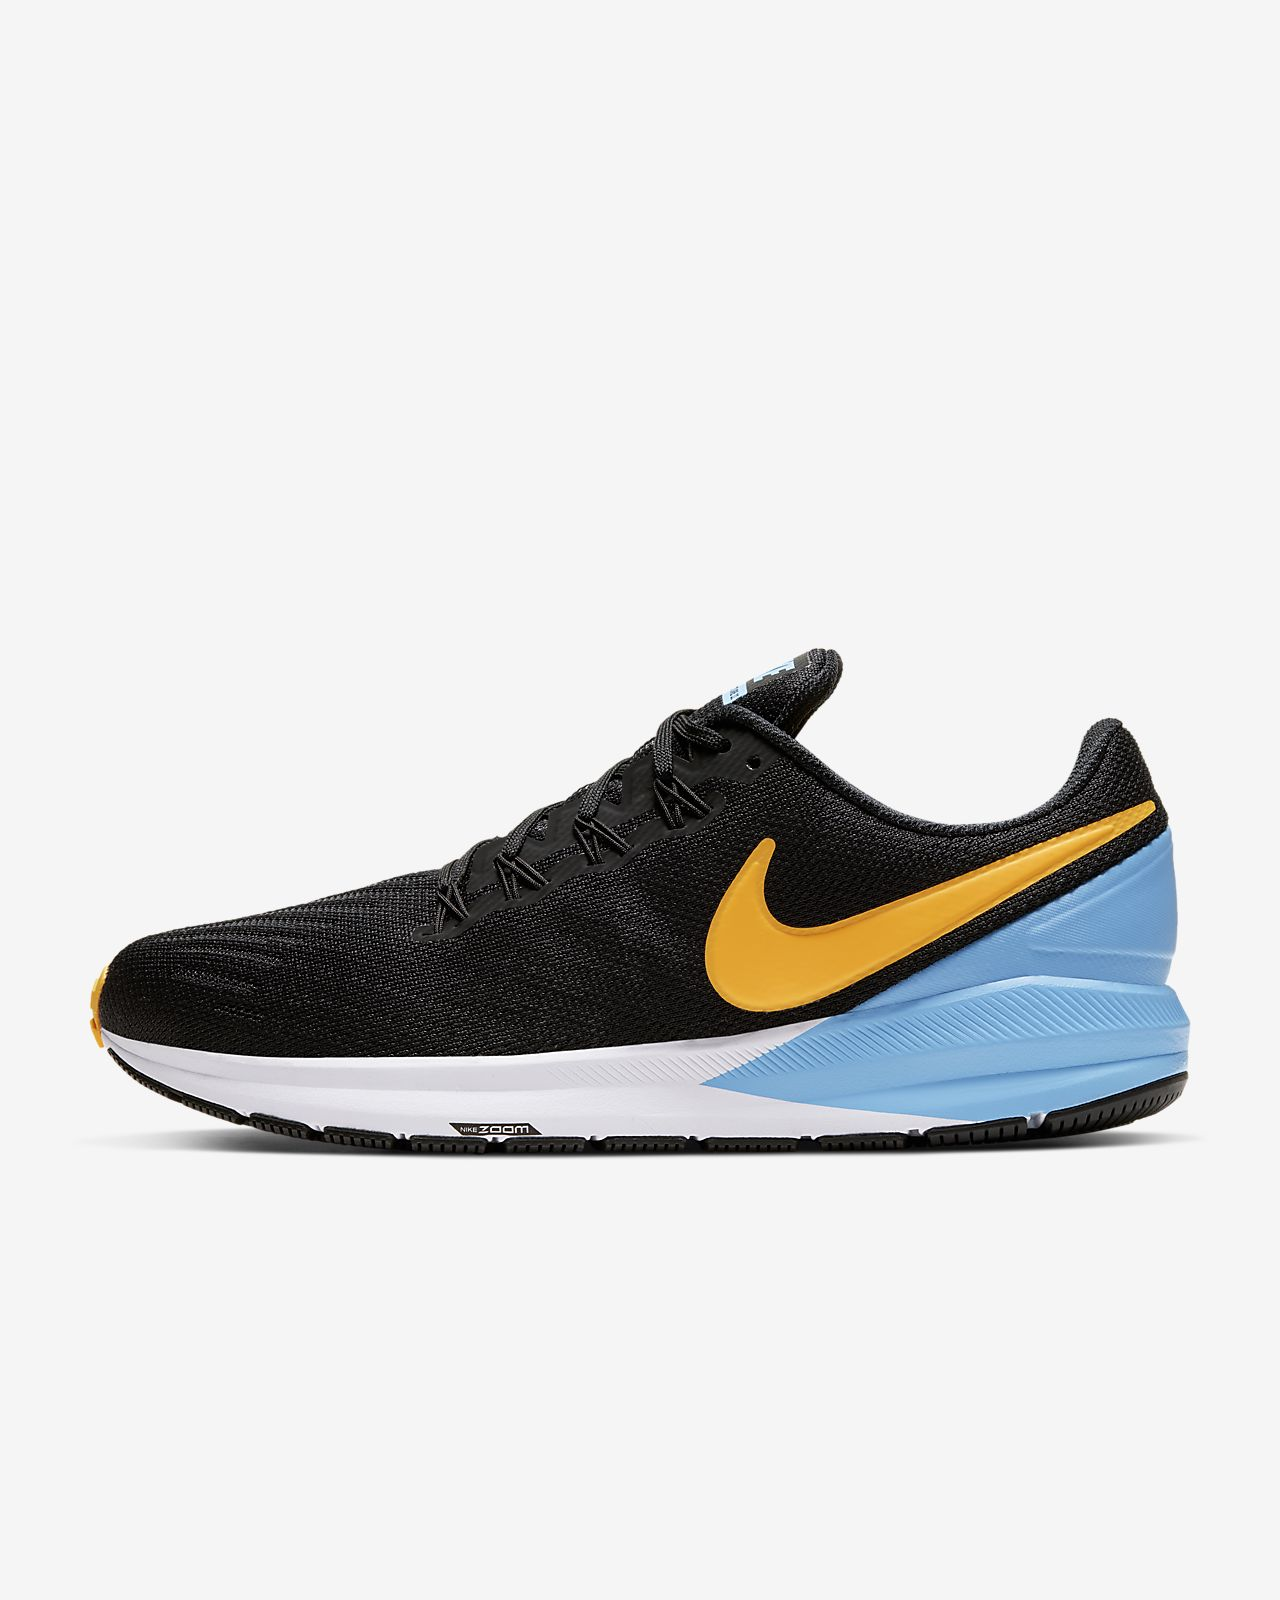 Nike Air Zoom Structure 22 Men's Running Shoe